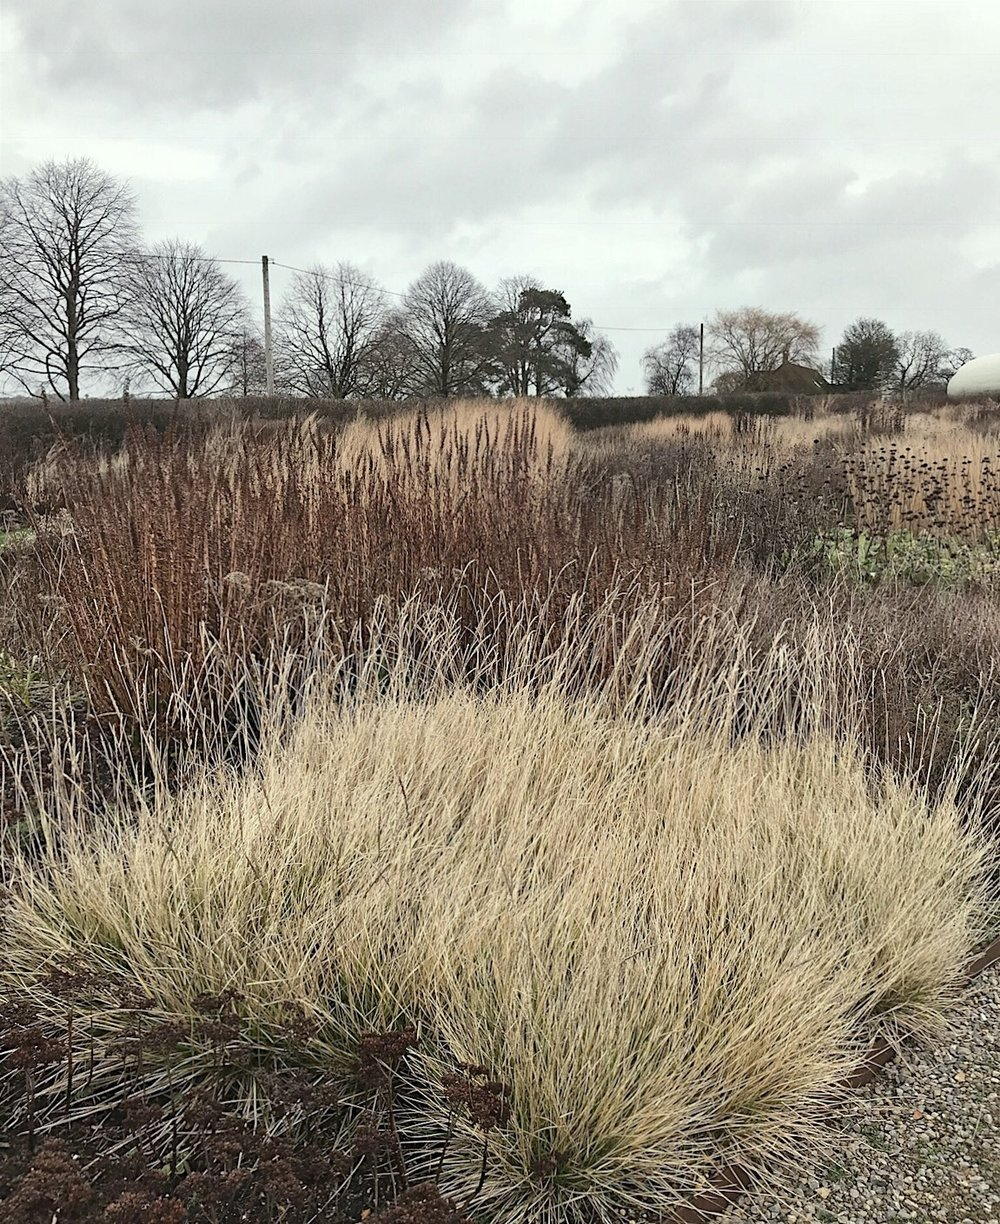 Prairie grasses in the Piet Oudolf garden